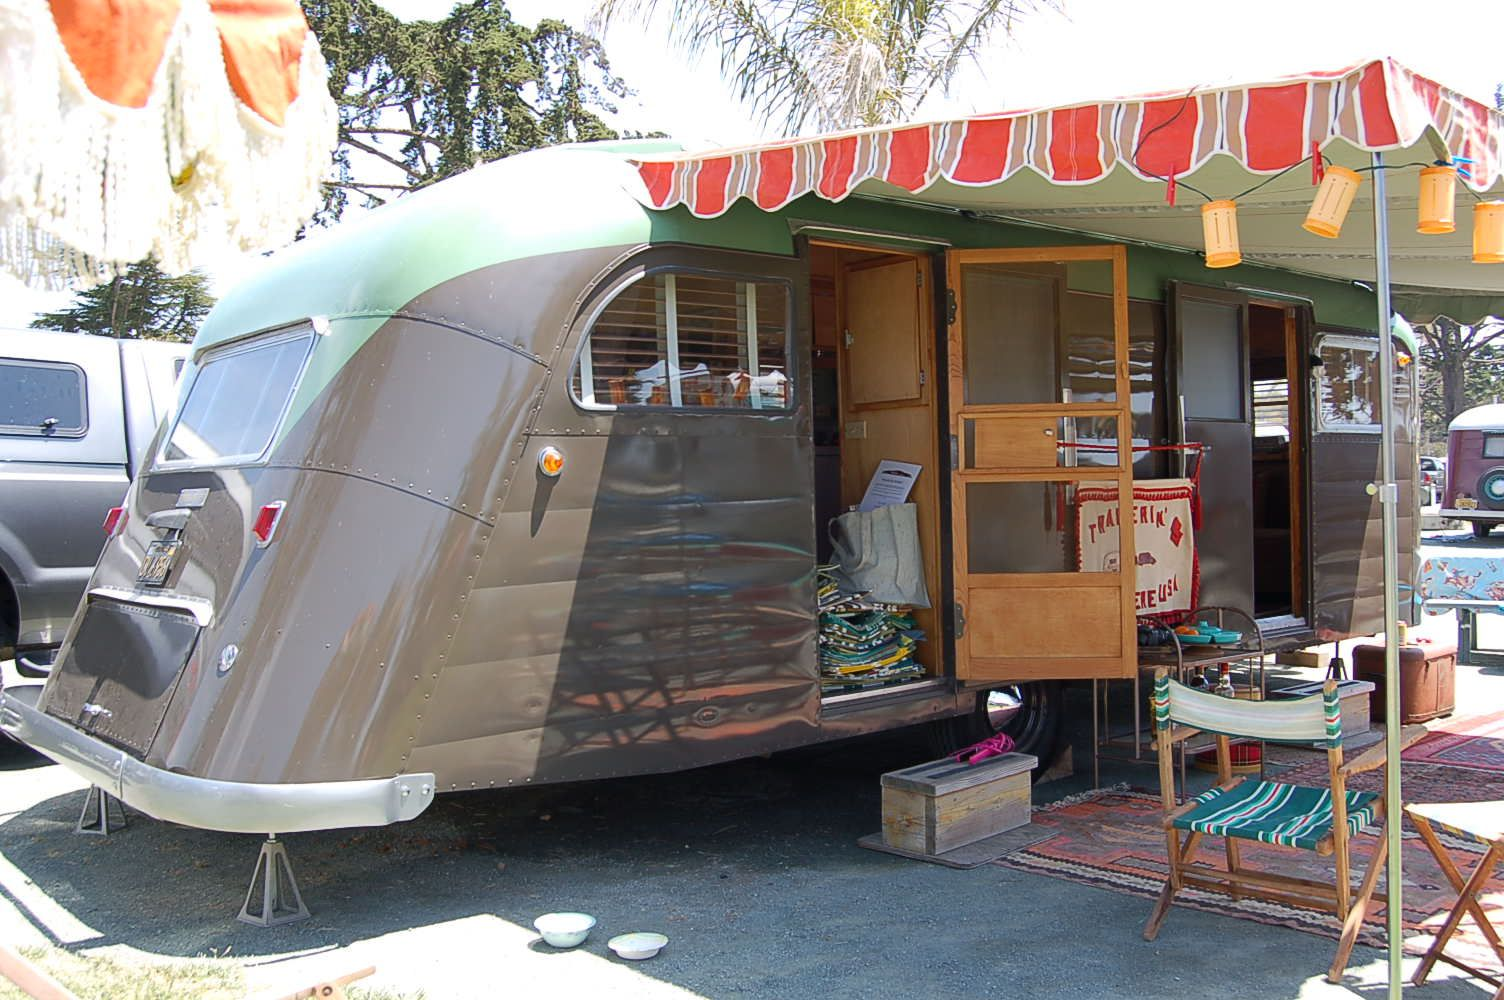 Photo Of 1950 Westcrft Coronado Vintage Trailer With Orange And Brown Awning With Retro Scalloped Edge Vintage Trailer Trailer Awning Vintage Travel Trailers